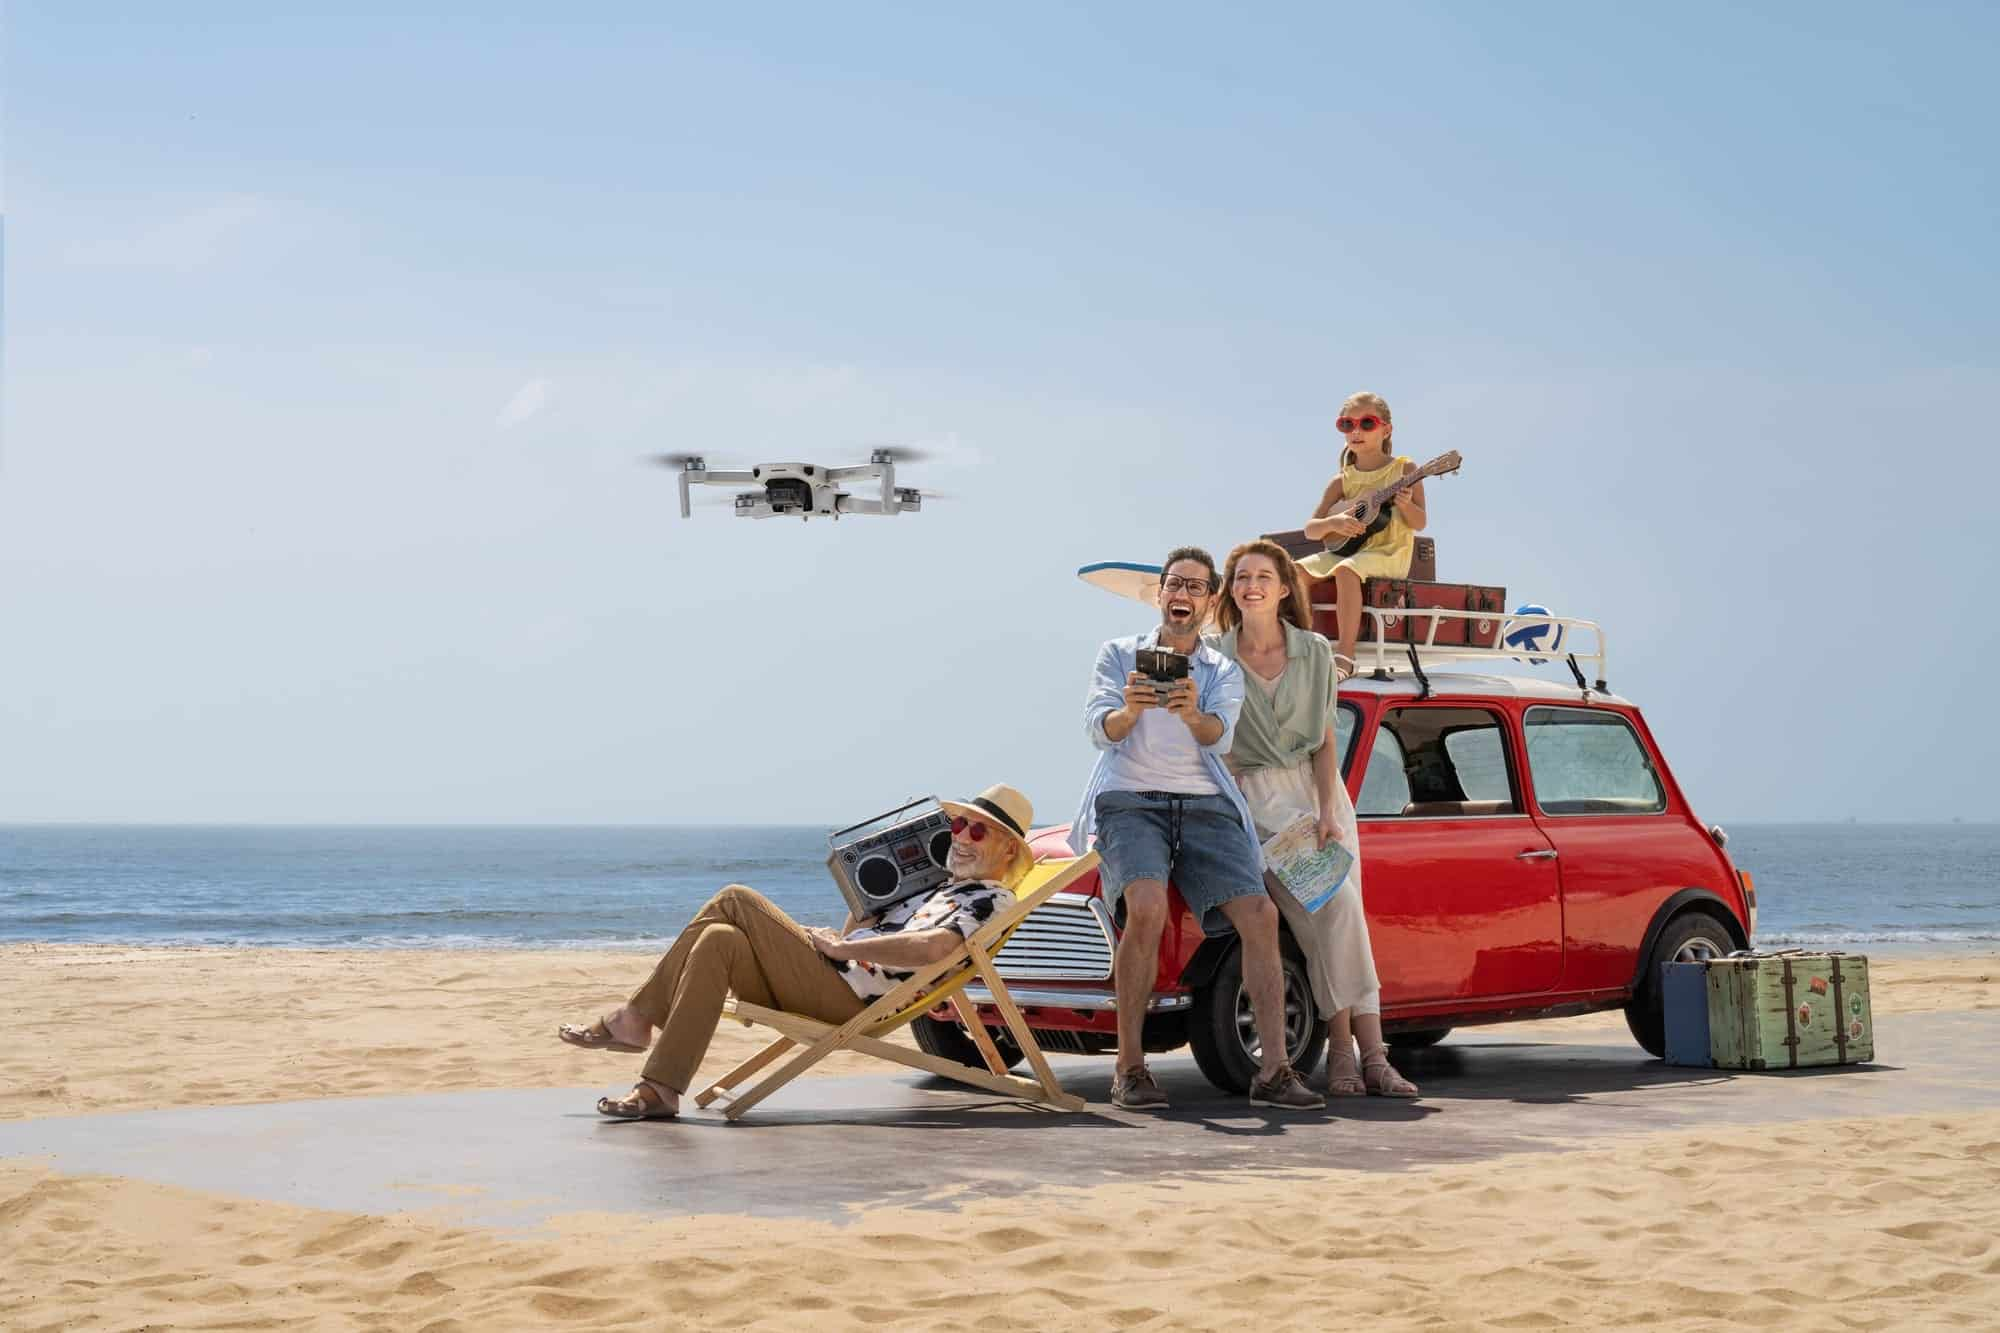 DJI Mini 2 officially released by world's largest drone maker